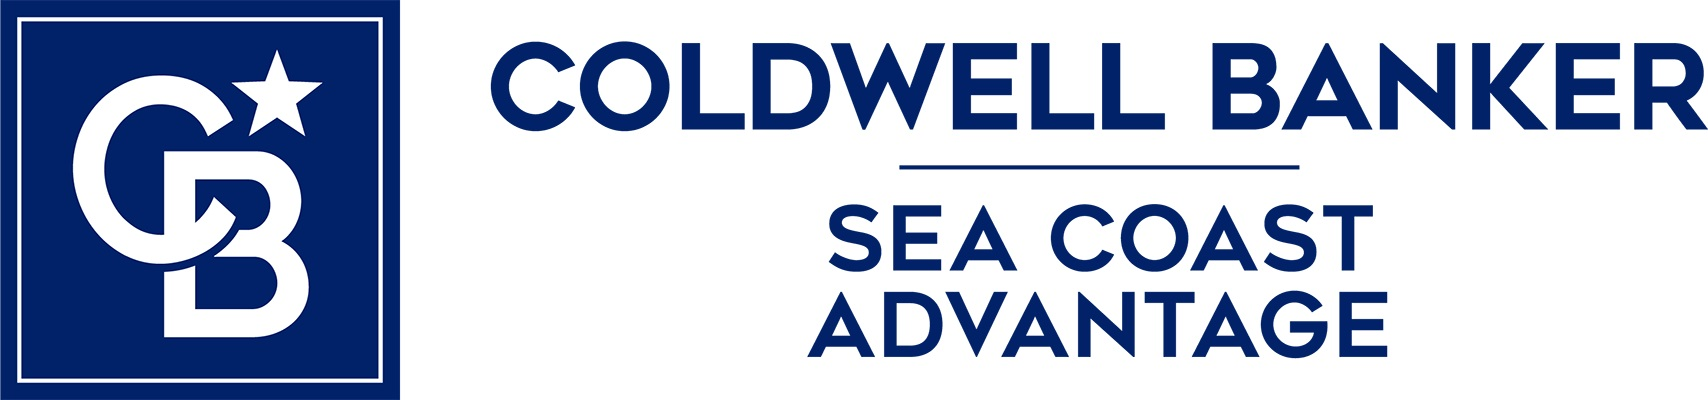 Judy Stansfield - Coldwell Banker Sea Coast Advantage Realty Logo